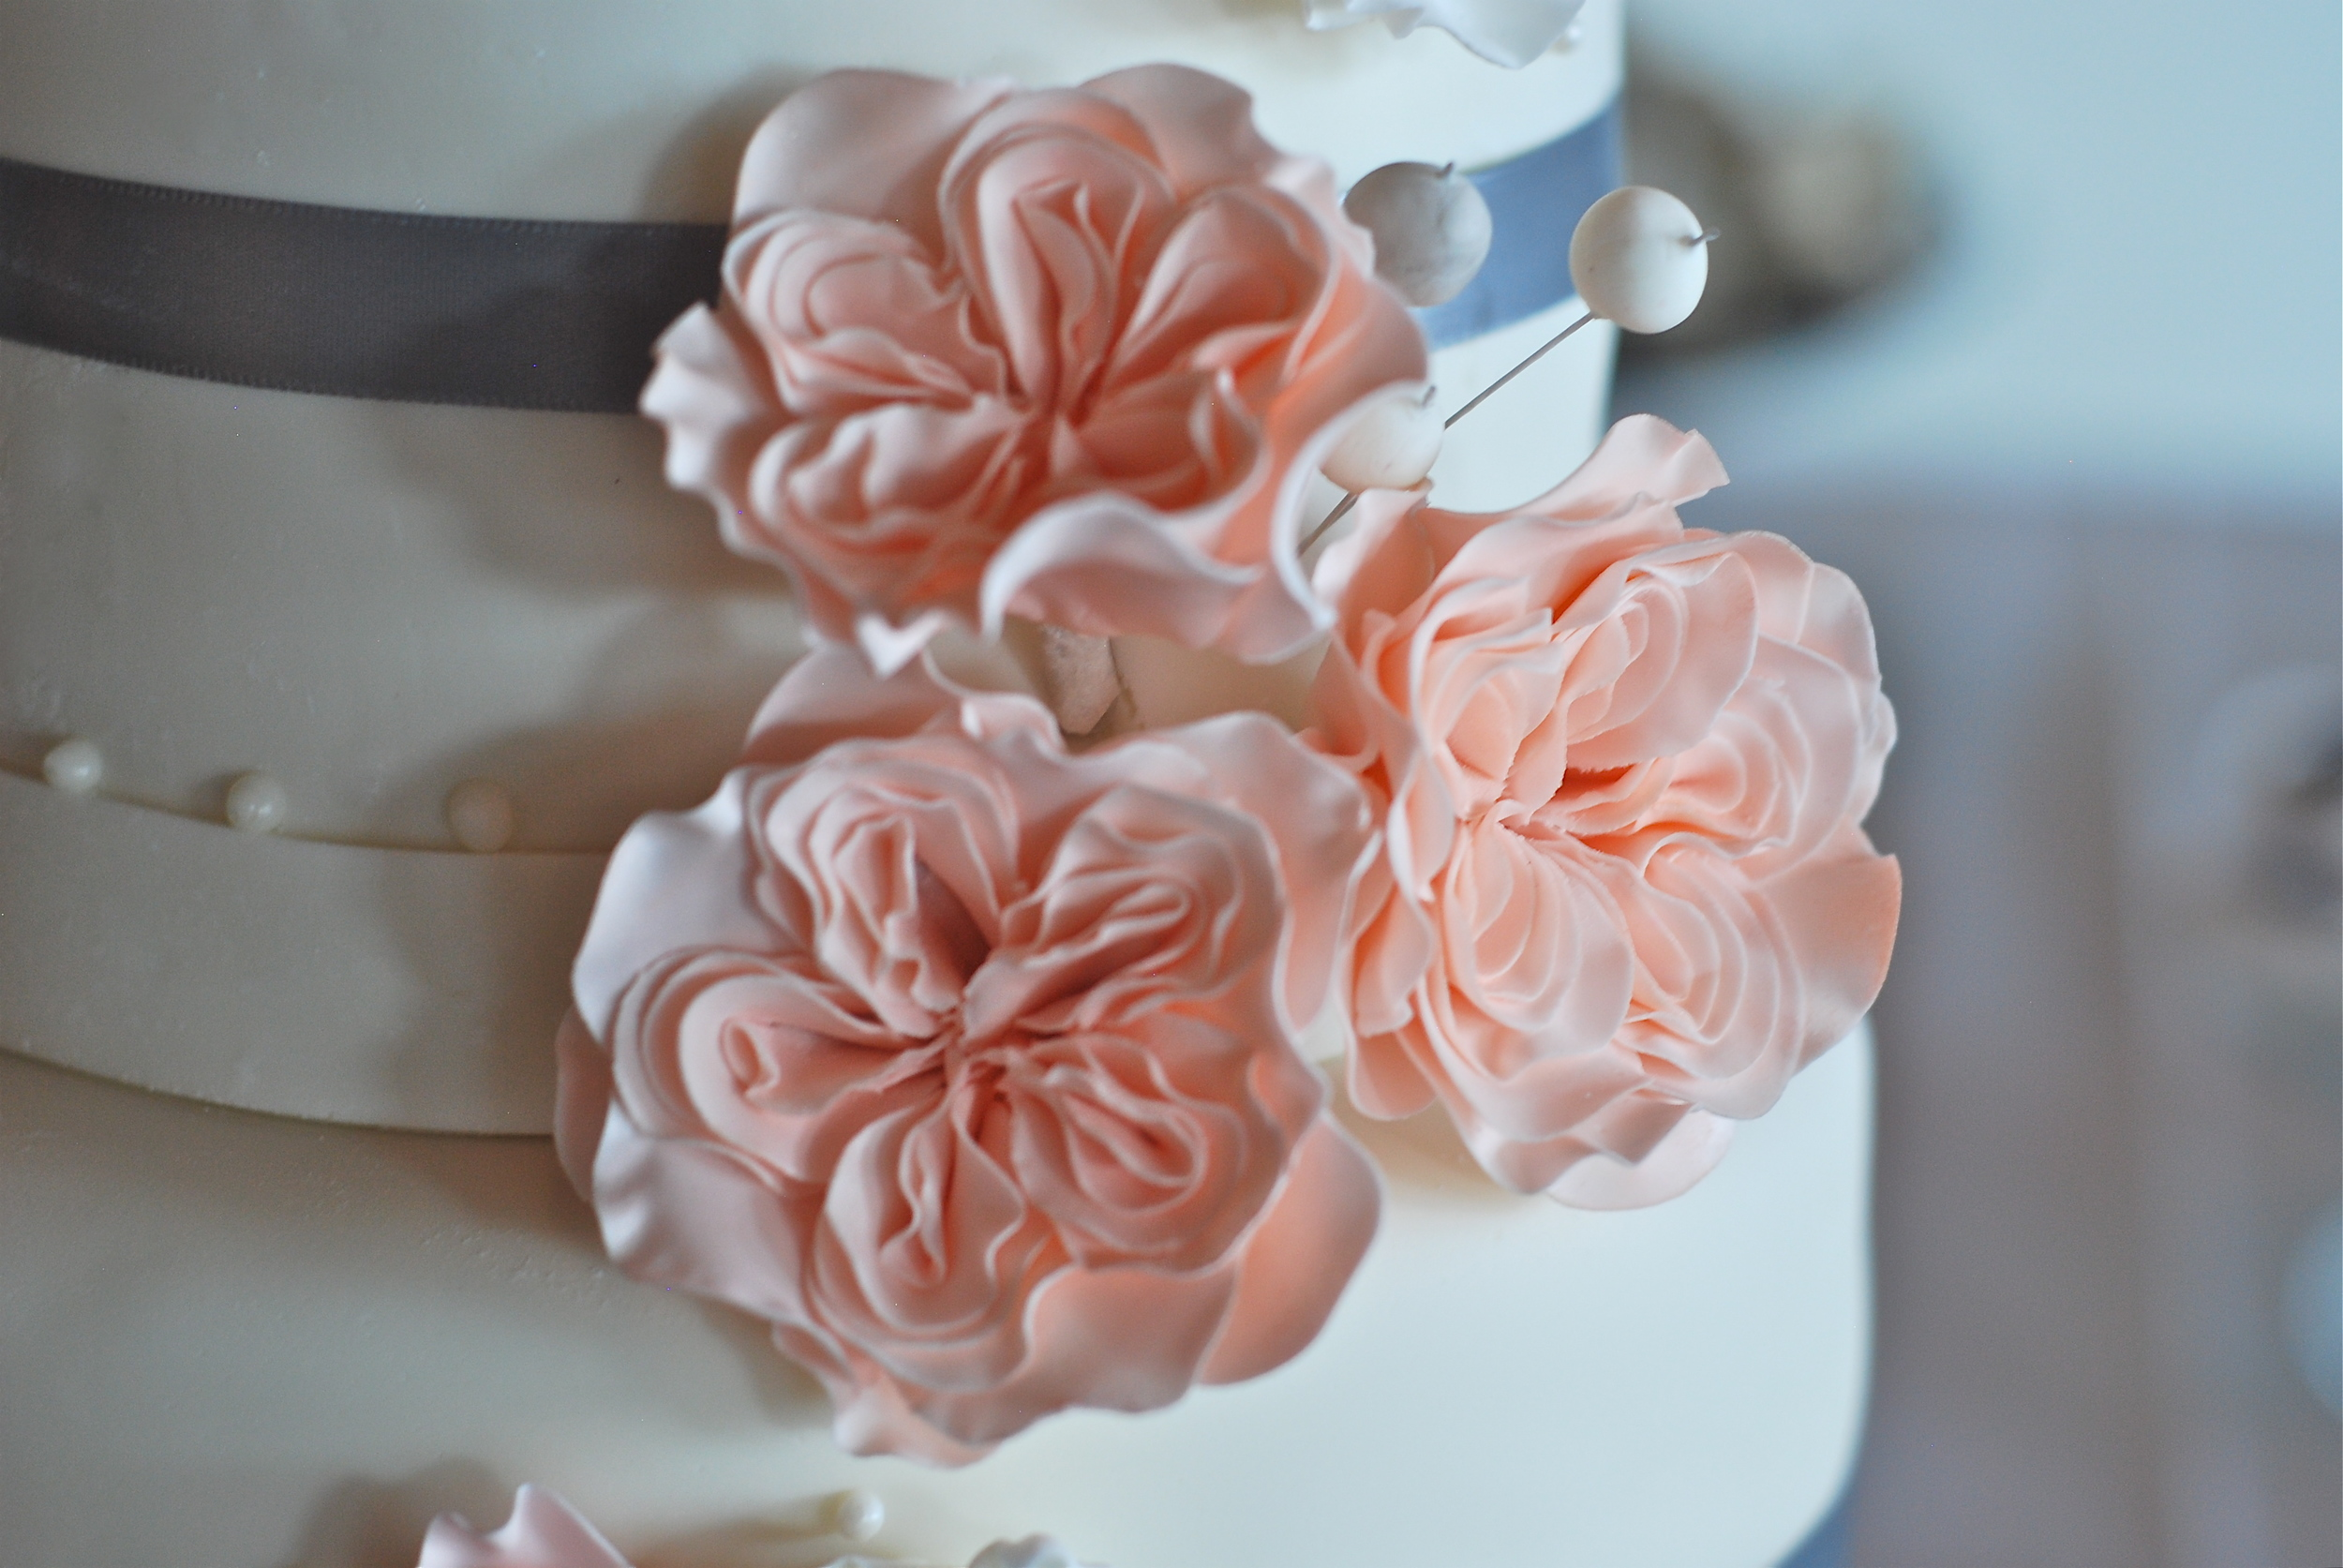 We love, love, LOVE the intricacy of these gumpaste cabbage roses!